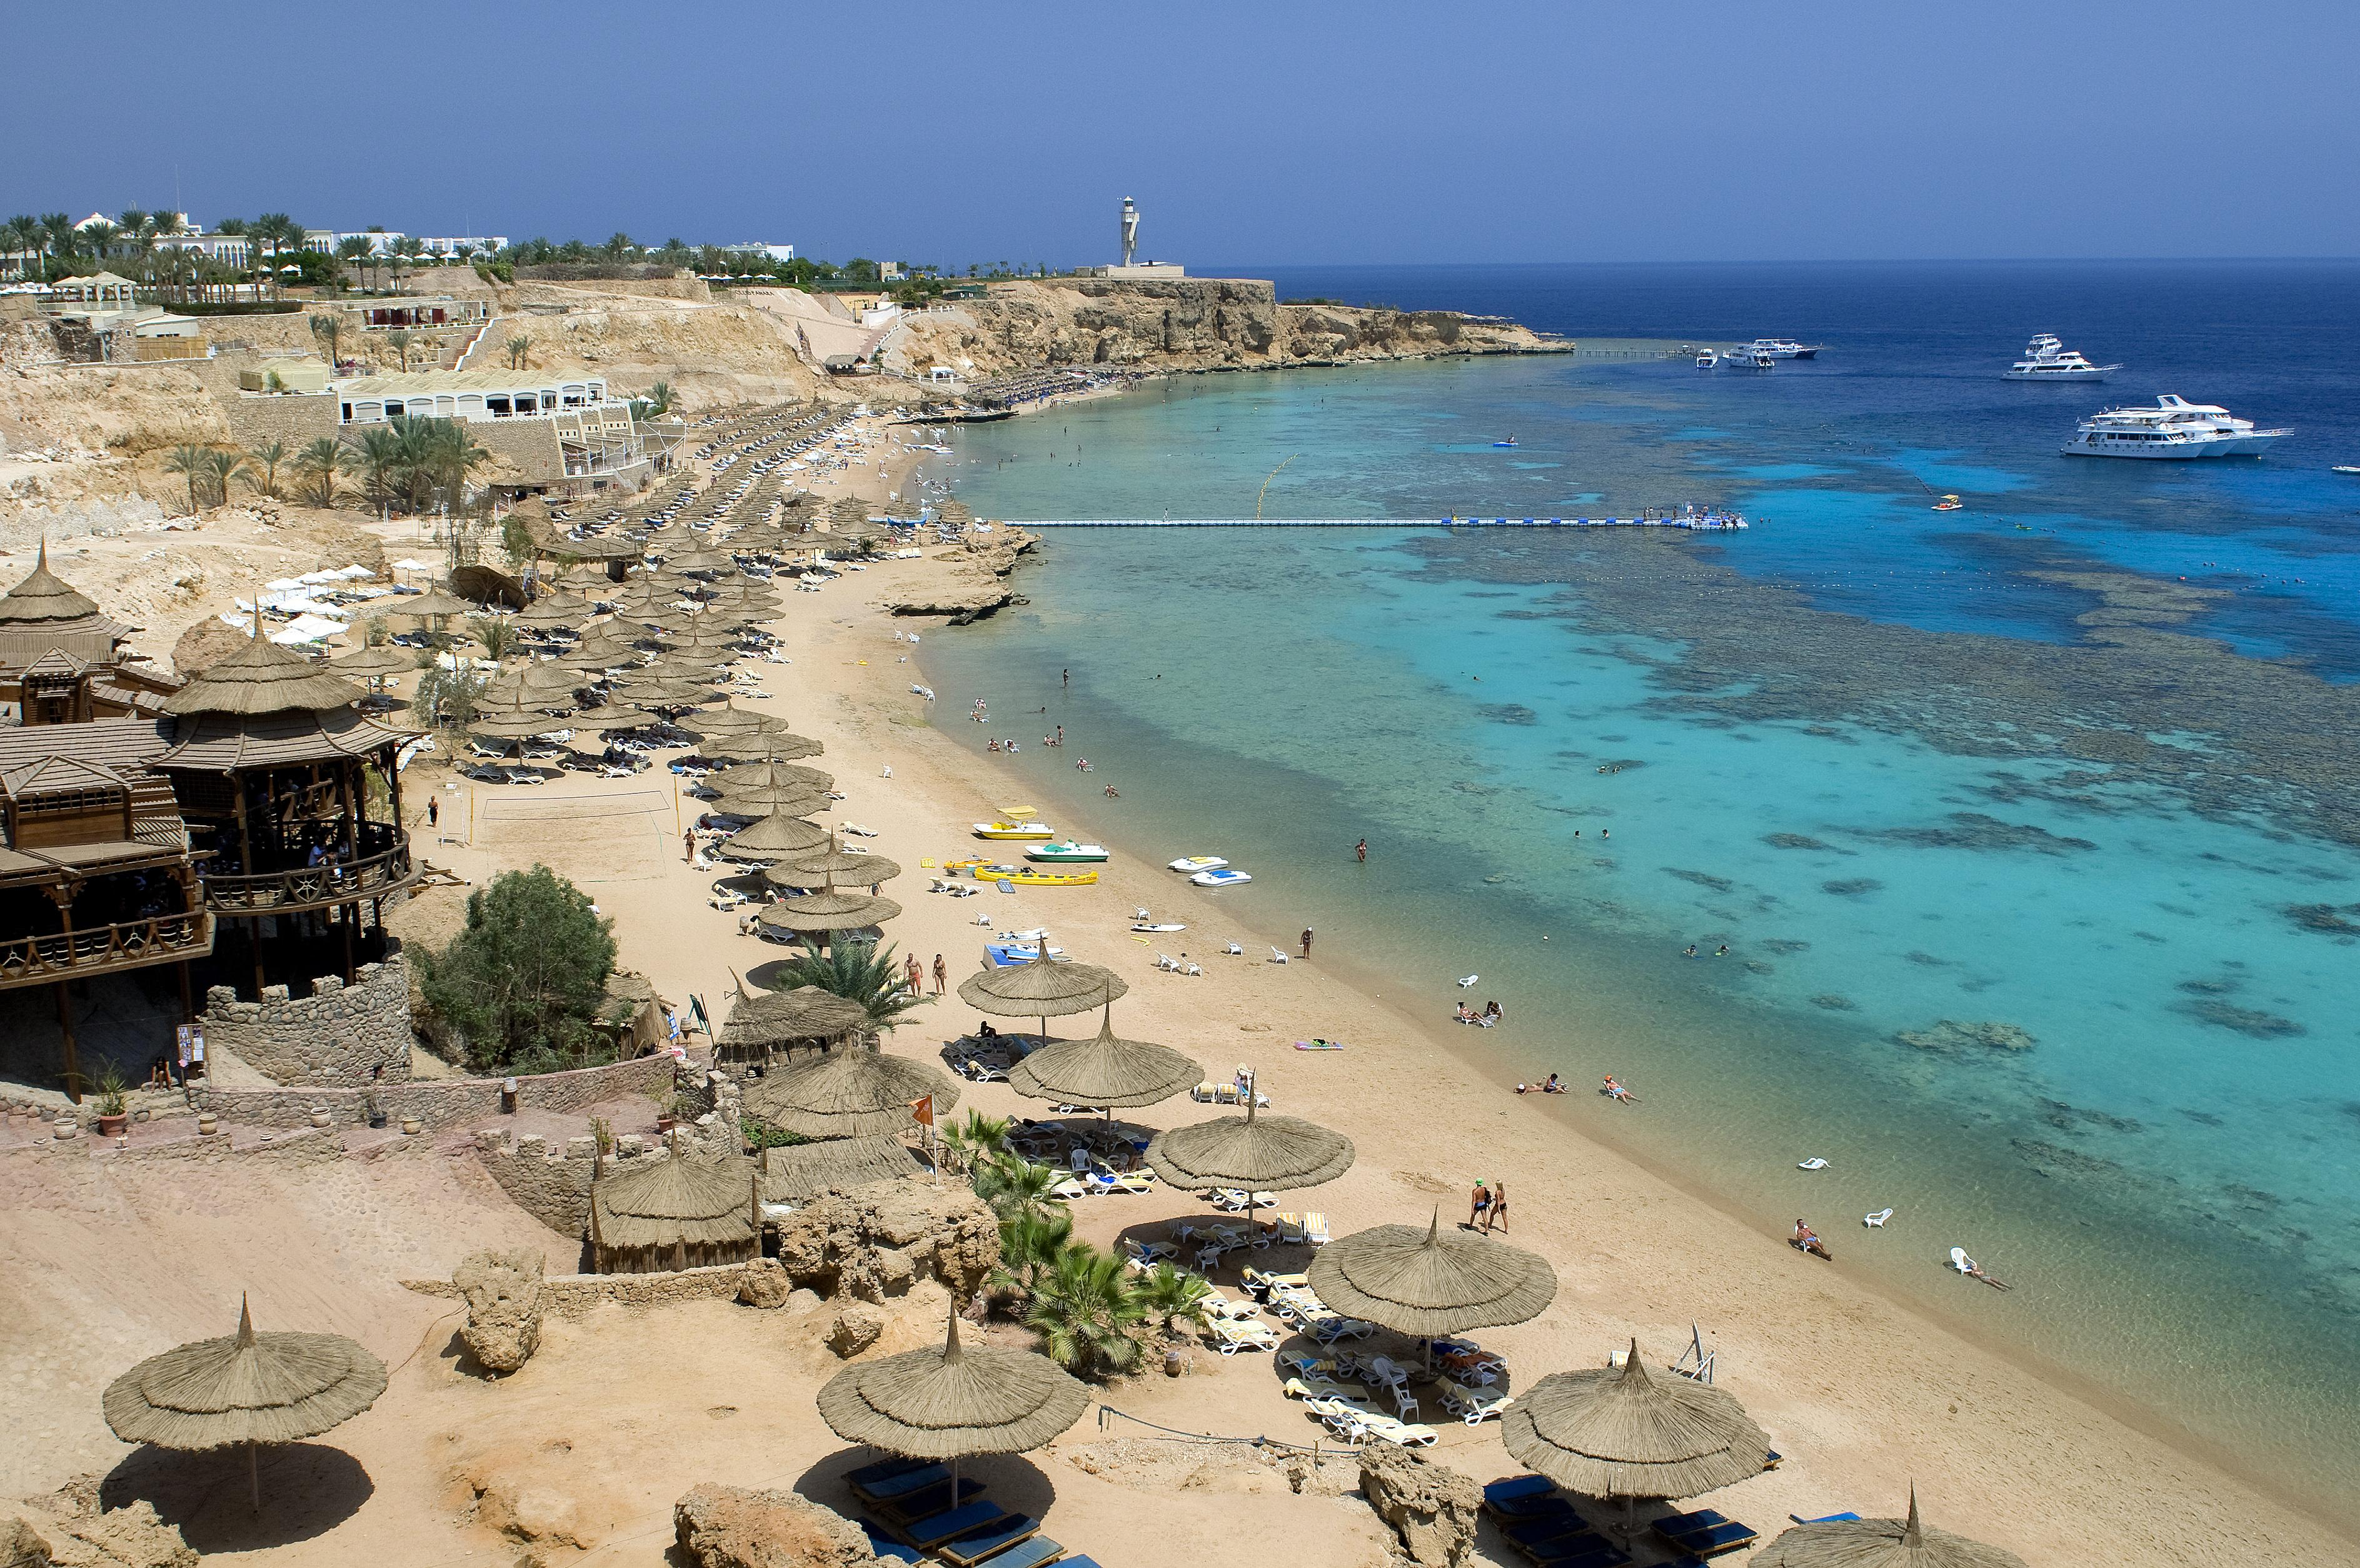 The Egyptian resort of Sharm El Sheikh will also have a cash injection and be revamped